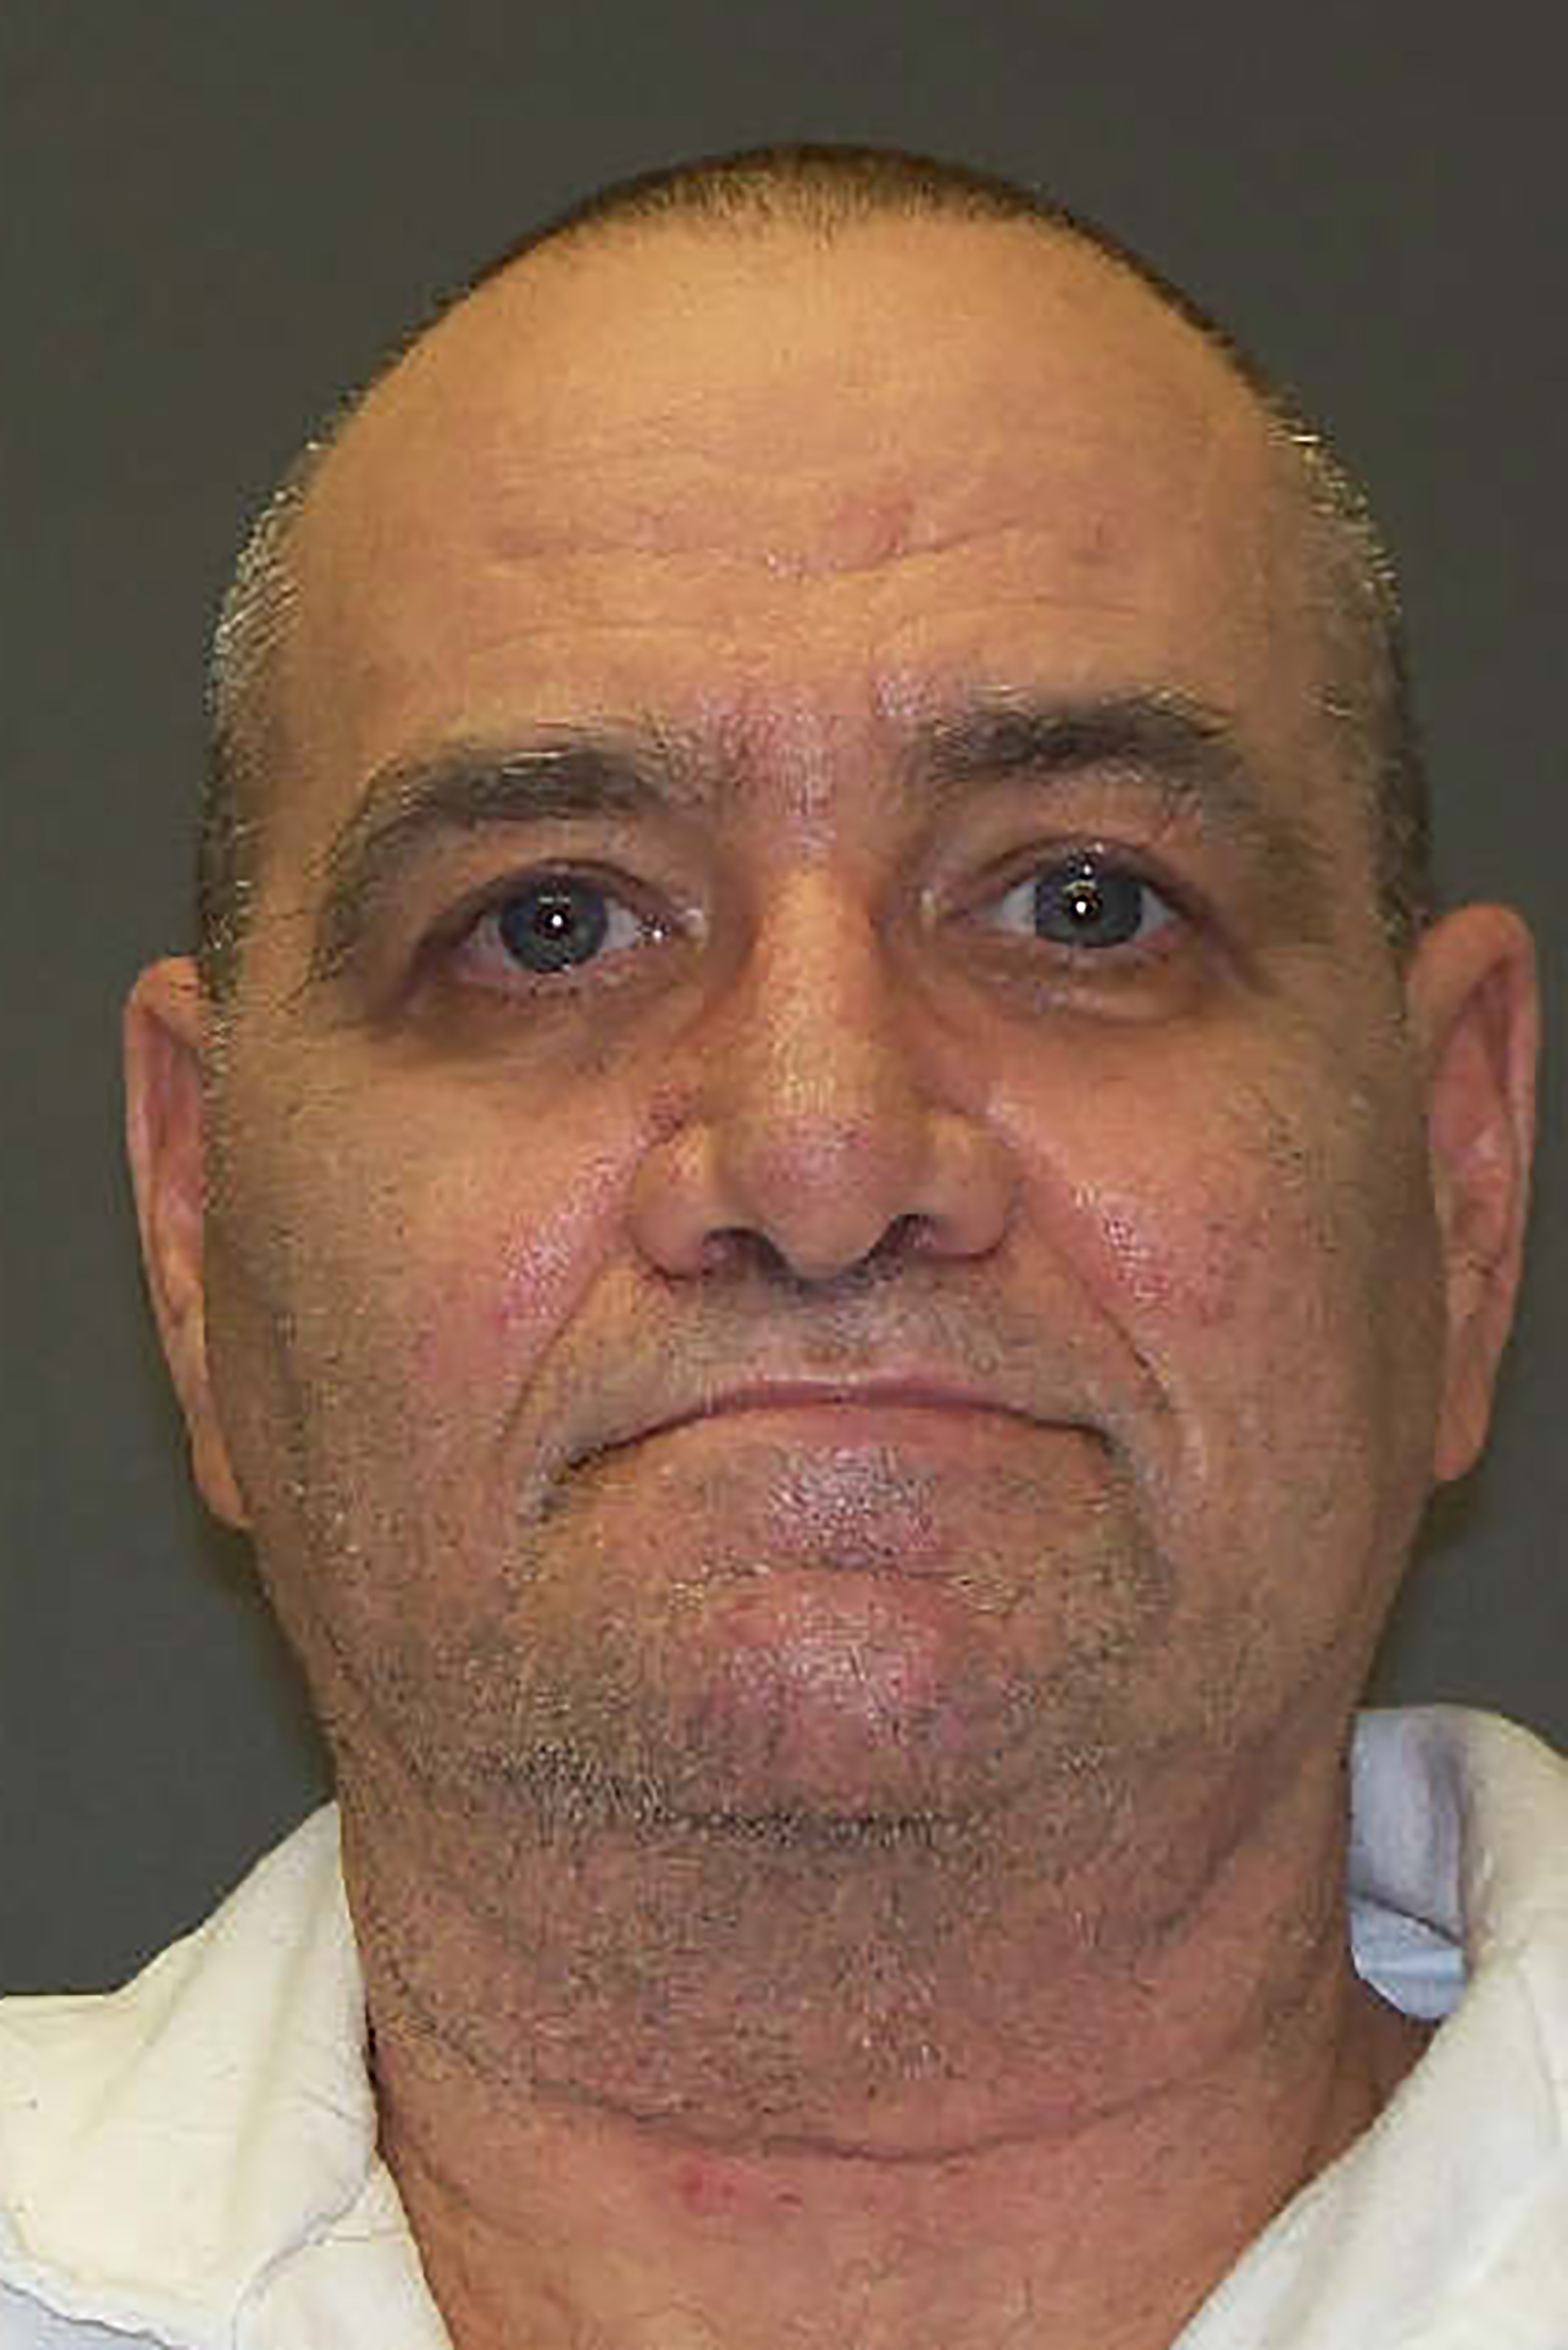 Texas inmate faces execution for killing wife in 2005